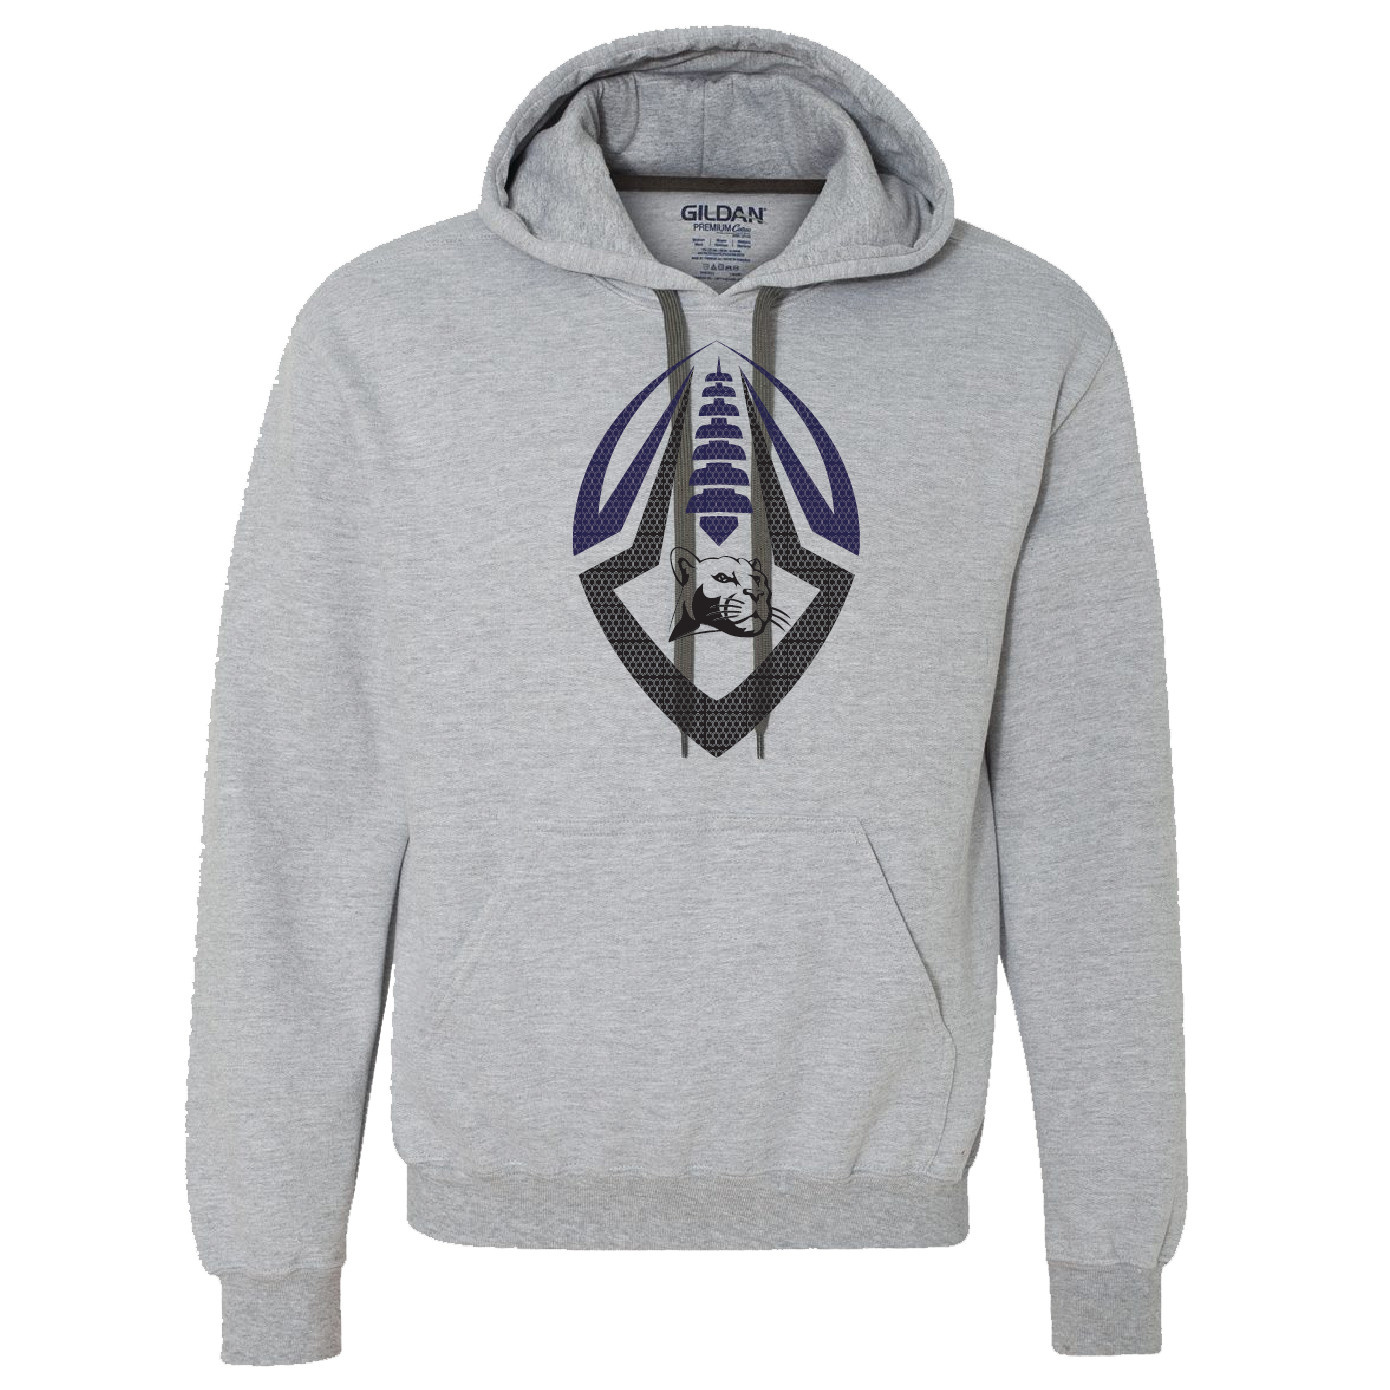 Gildan Gildan Premium Cotton Adult Hooded Sweatshirt (Sport Grey)